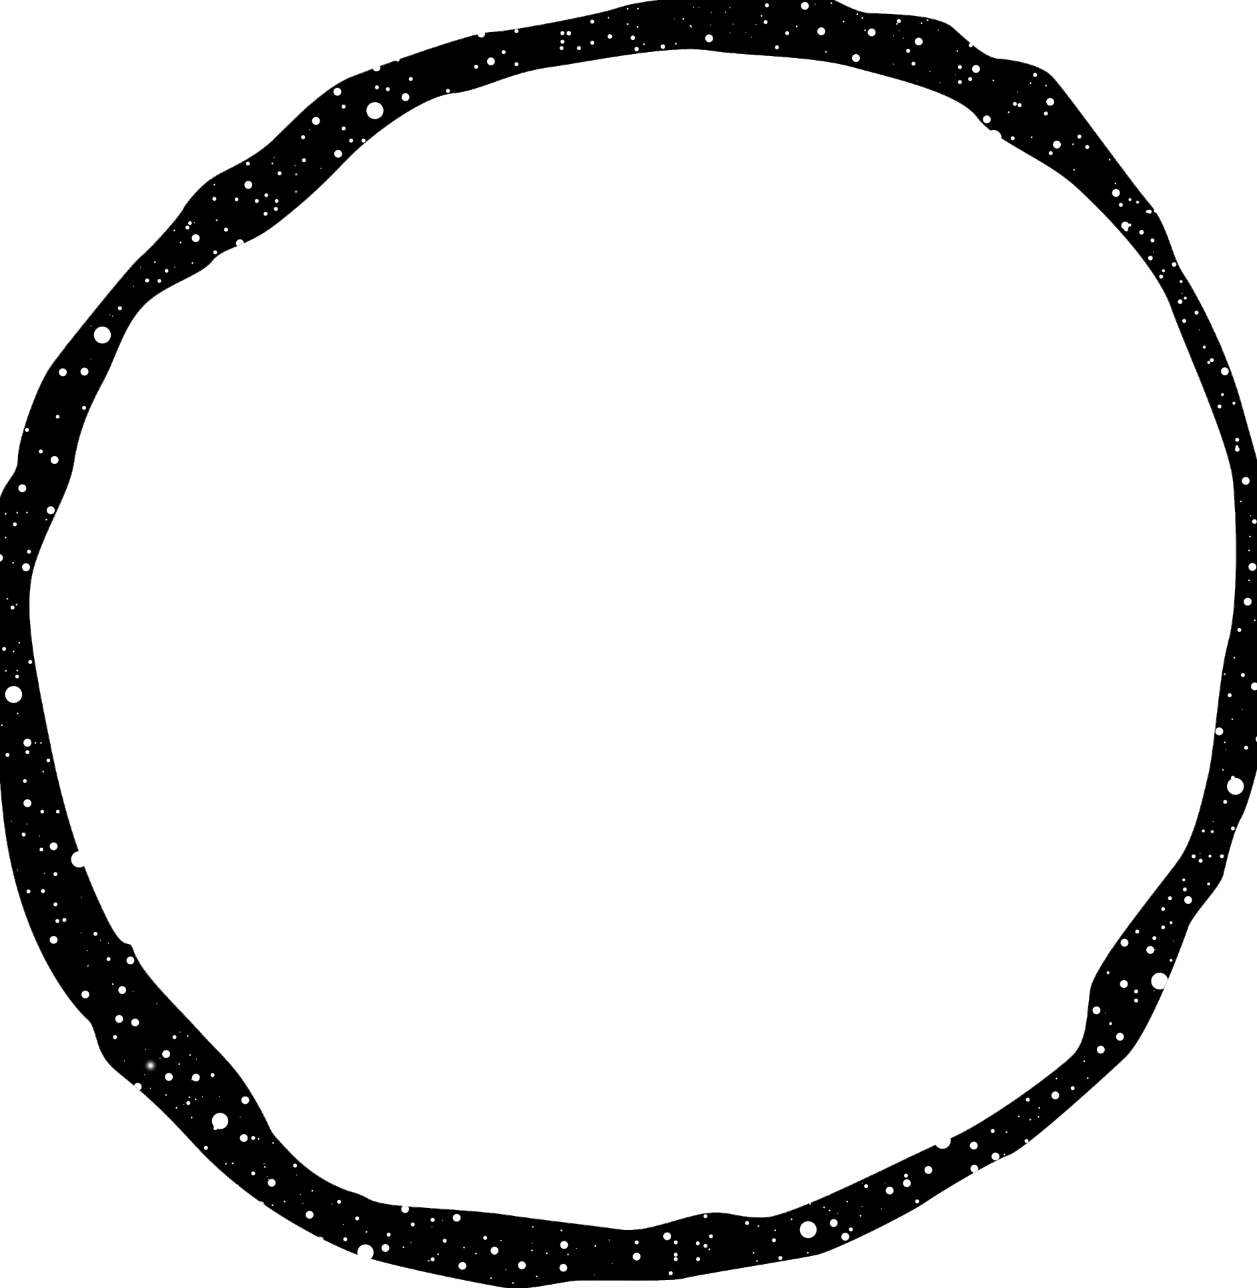 The image above will be burned onto a silk screen. Using print techniques,the black space above will transform into purple and navy blue celestial sky.